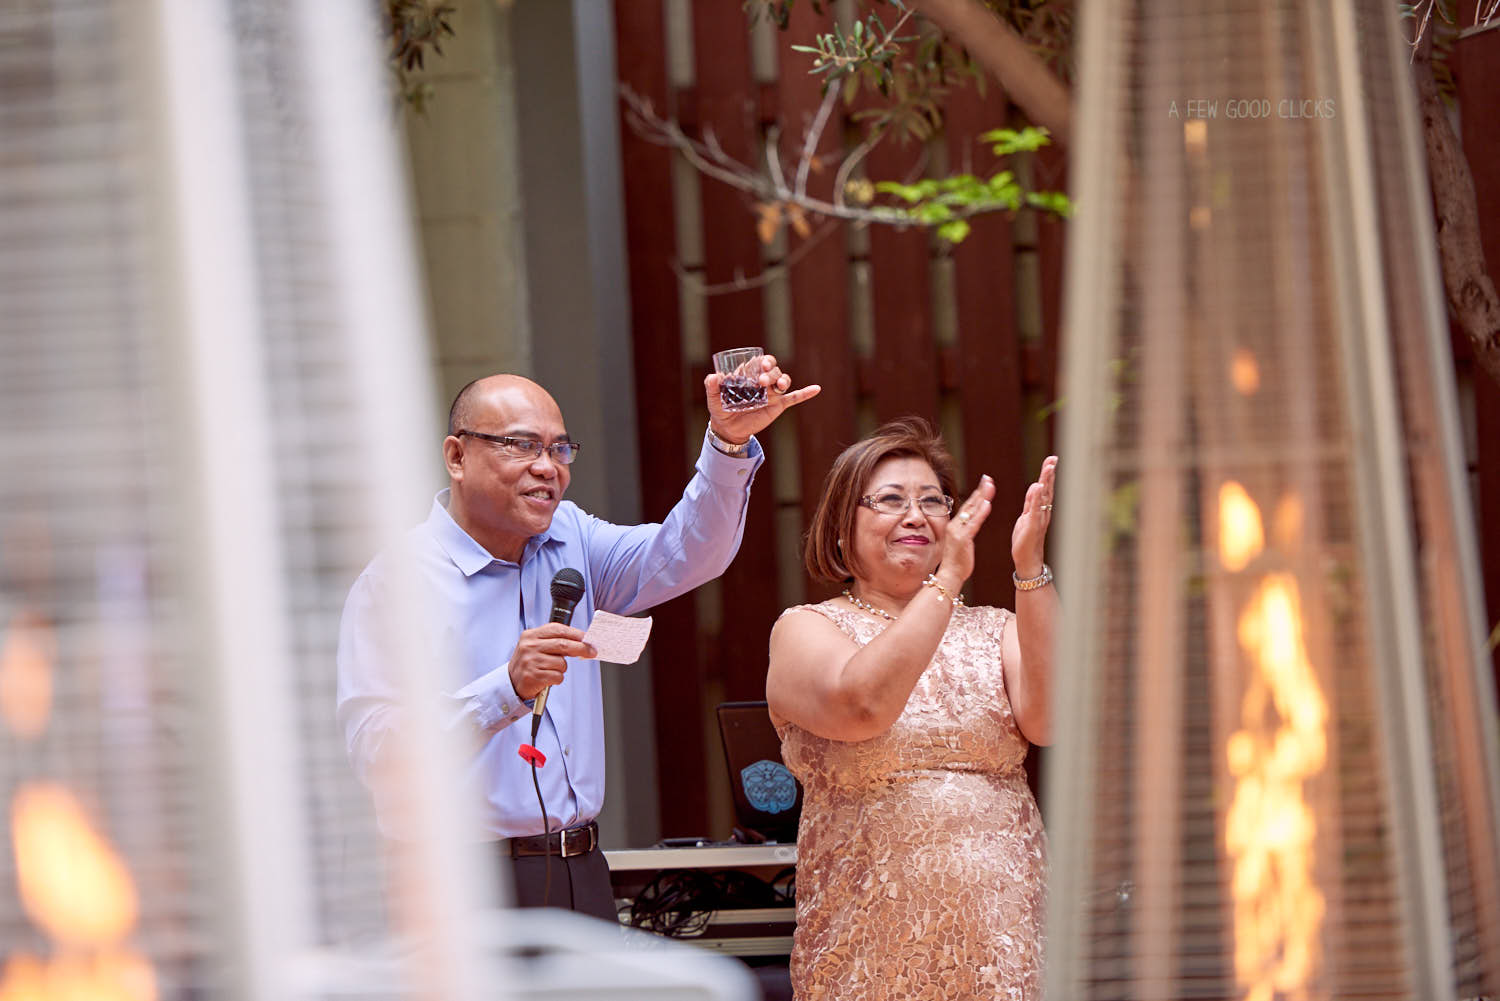 toast-to-60th-birthday-party-photography-a-few-good-clicks